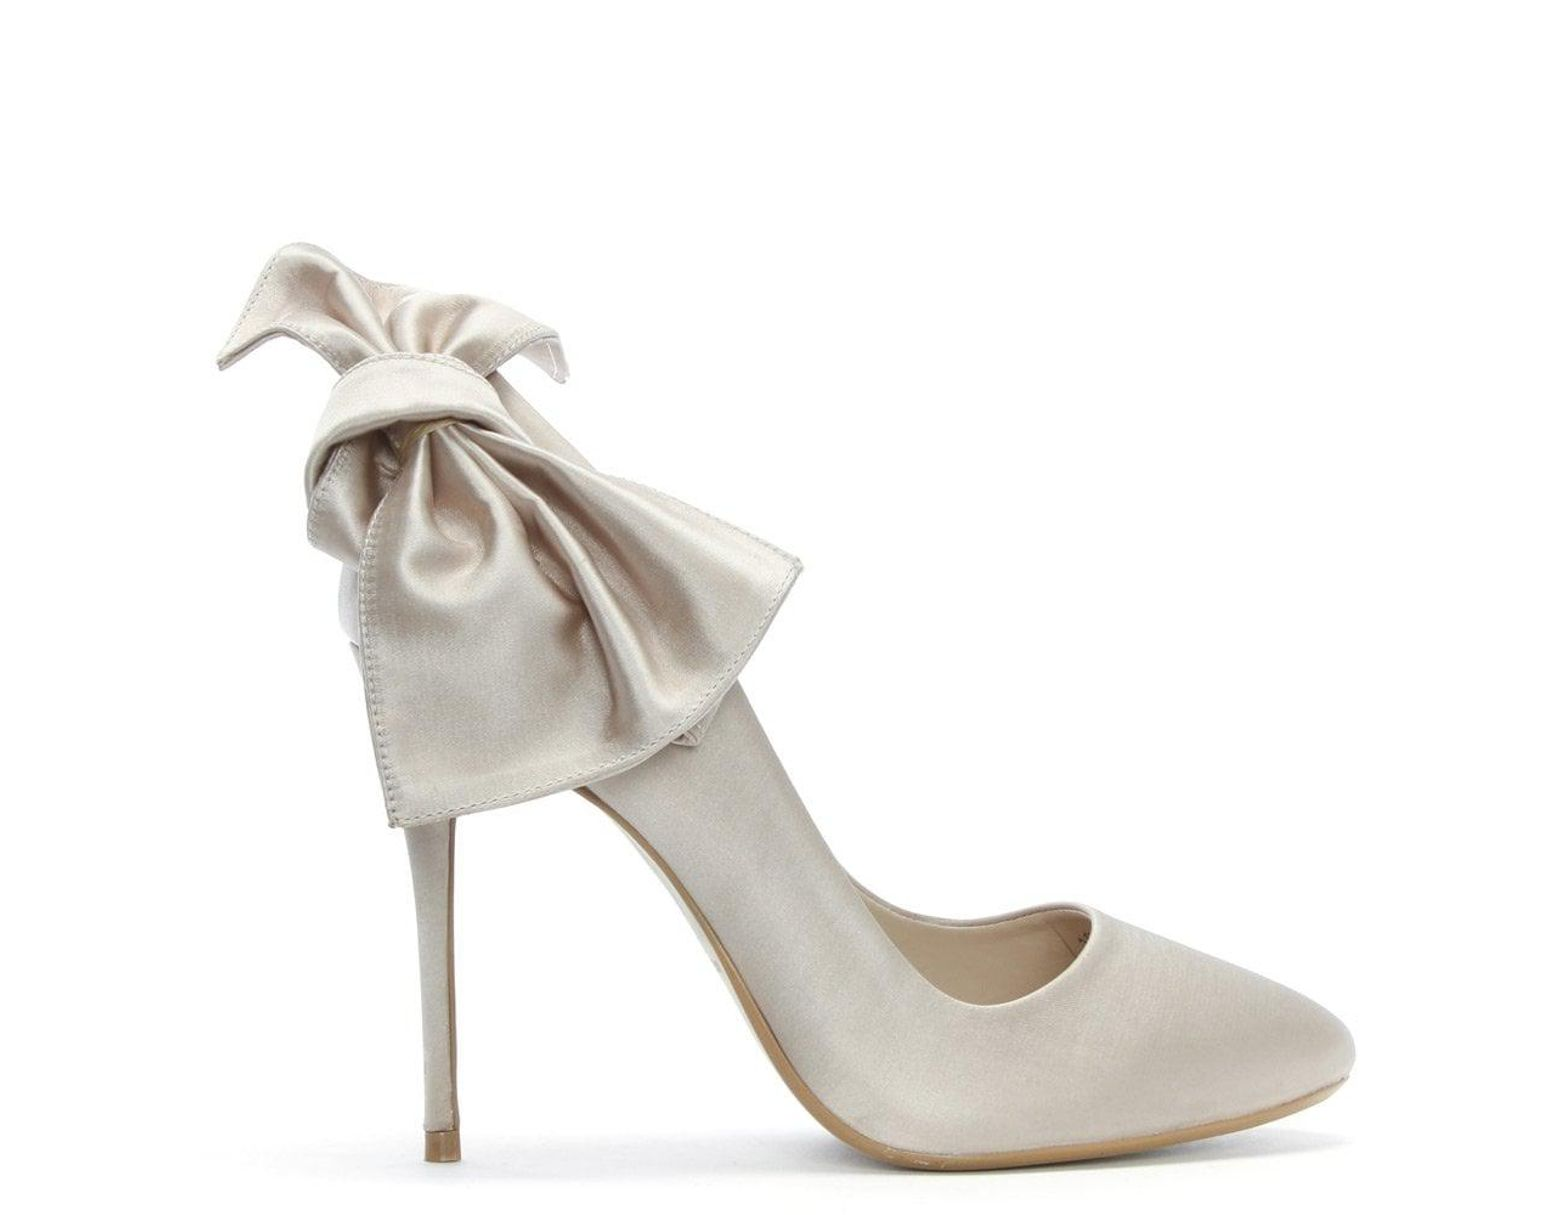 Mink White Women's Bow Shoes Satin Court 1F3lucTKJ